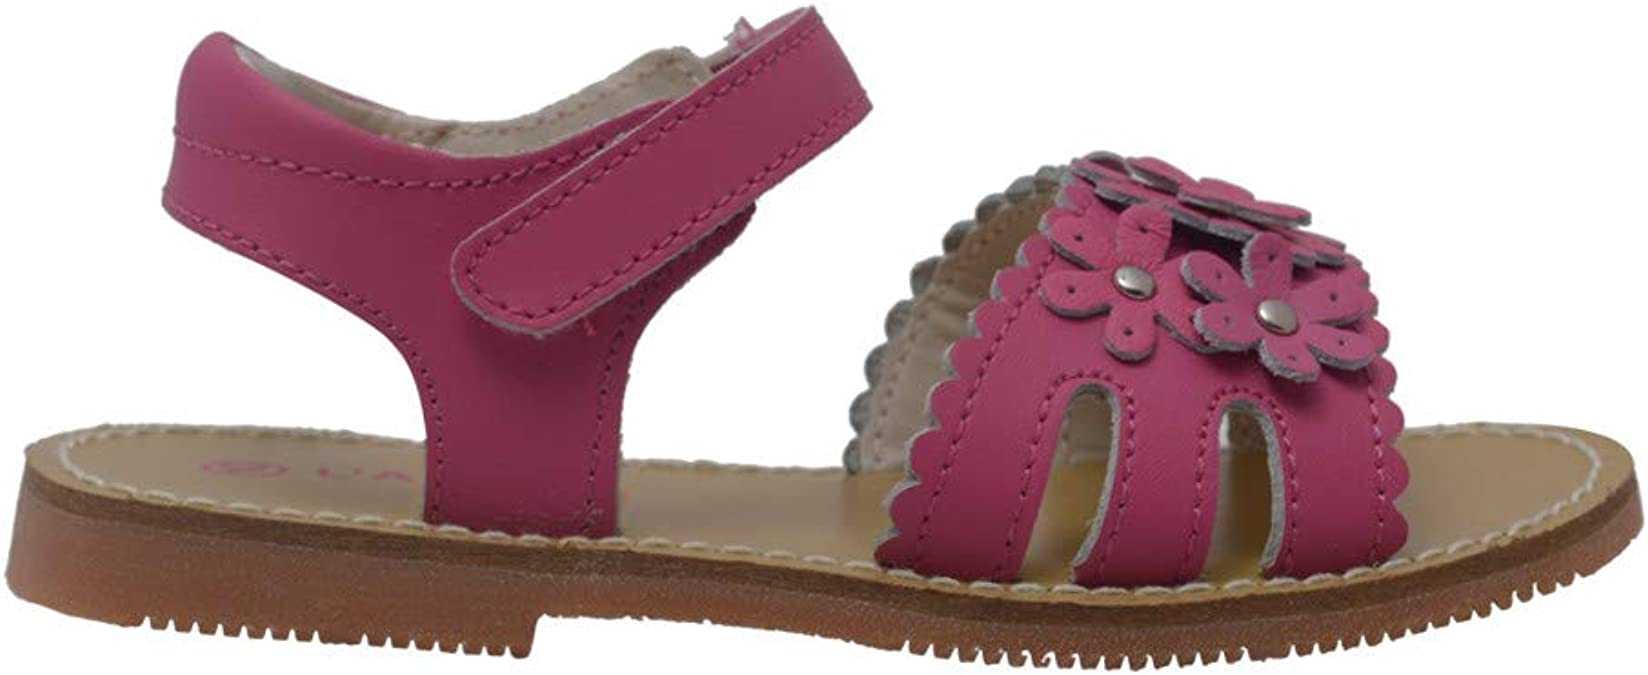 Josmo Girls Brown Buckle Accent Slip-On Casual Loafer Moccasins 11-4 Kids